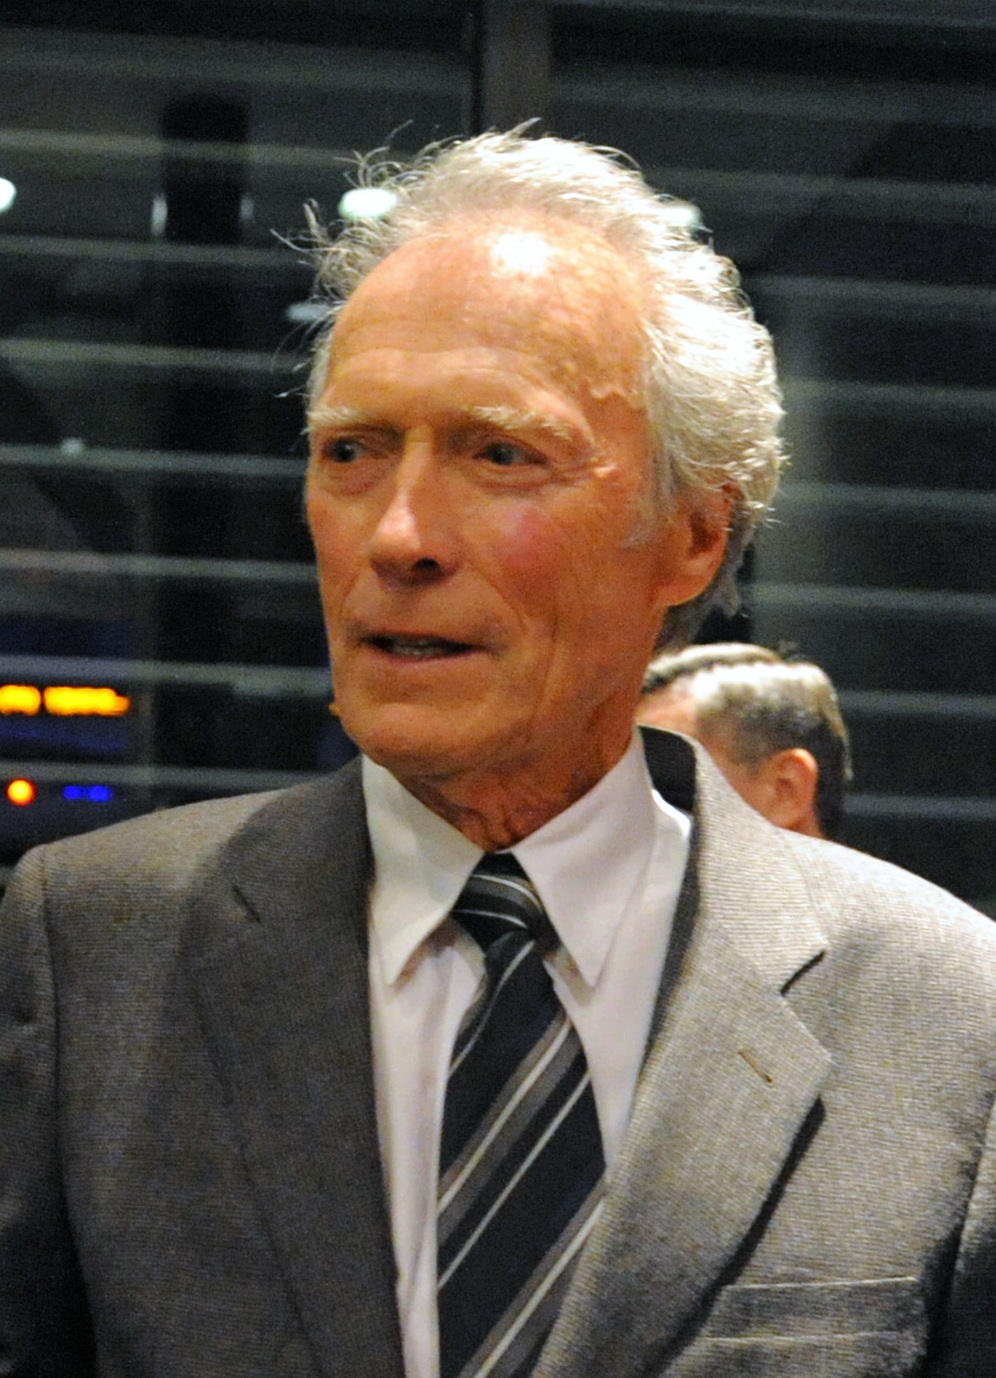 Clint Eastwood/Wikimedia Commons